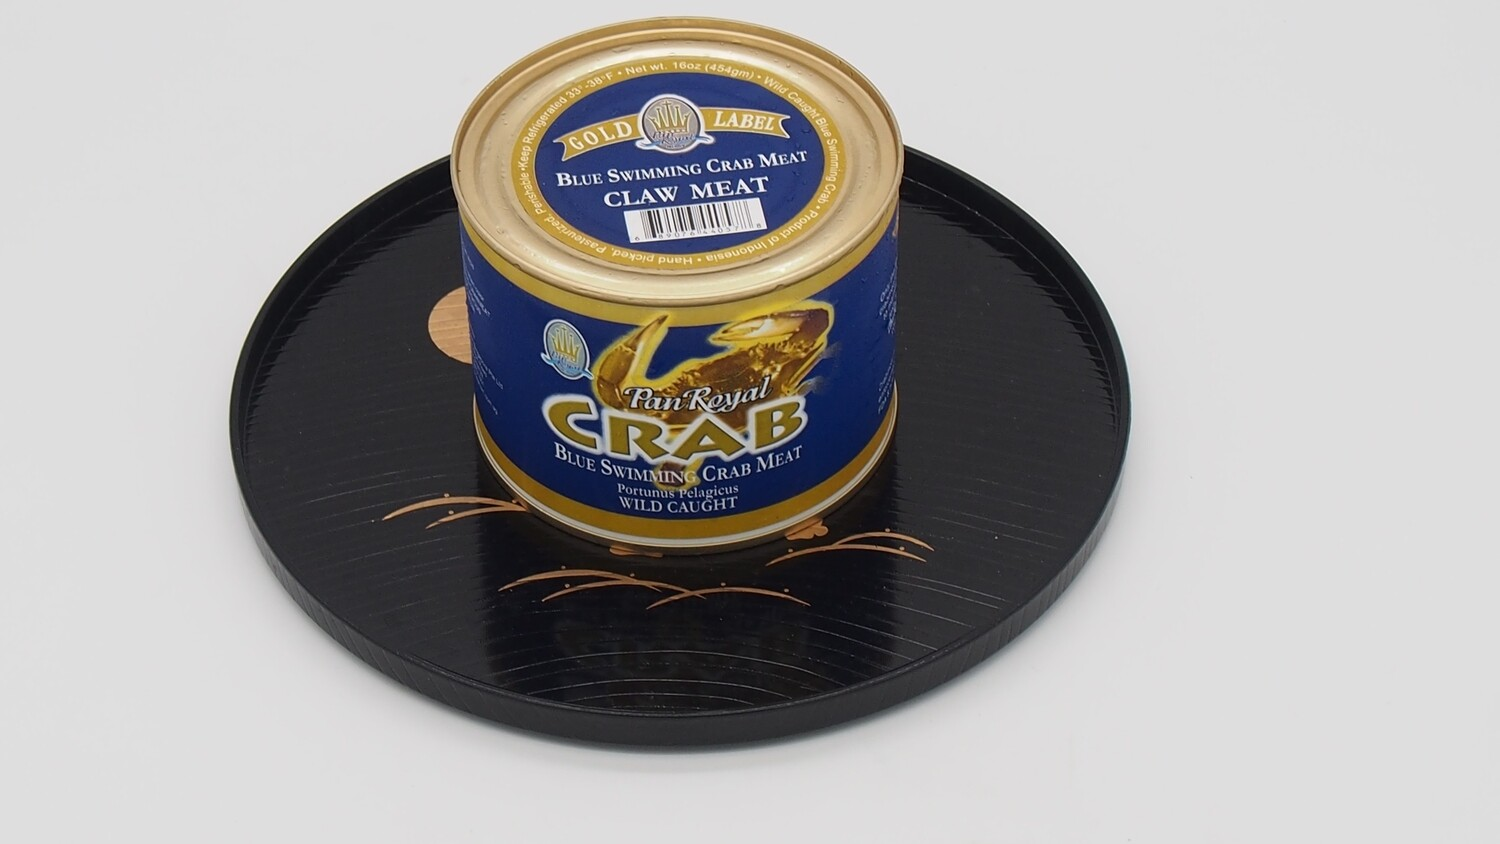 Pan Royal Pasteurized Crabmeat Claw